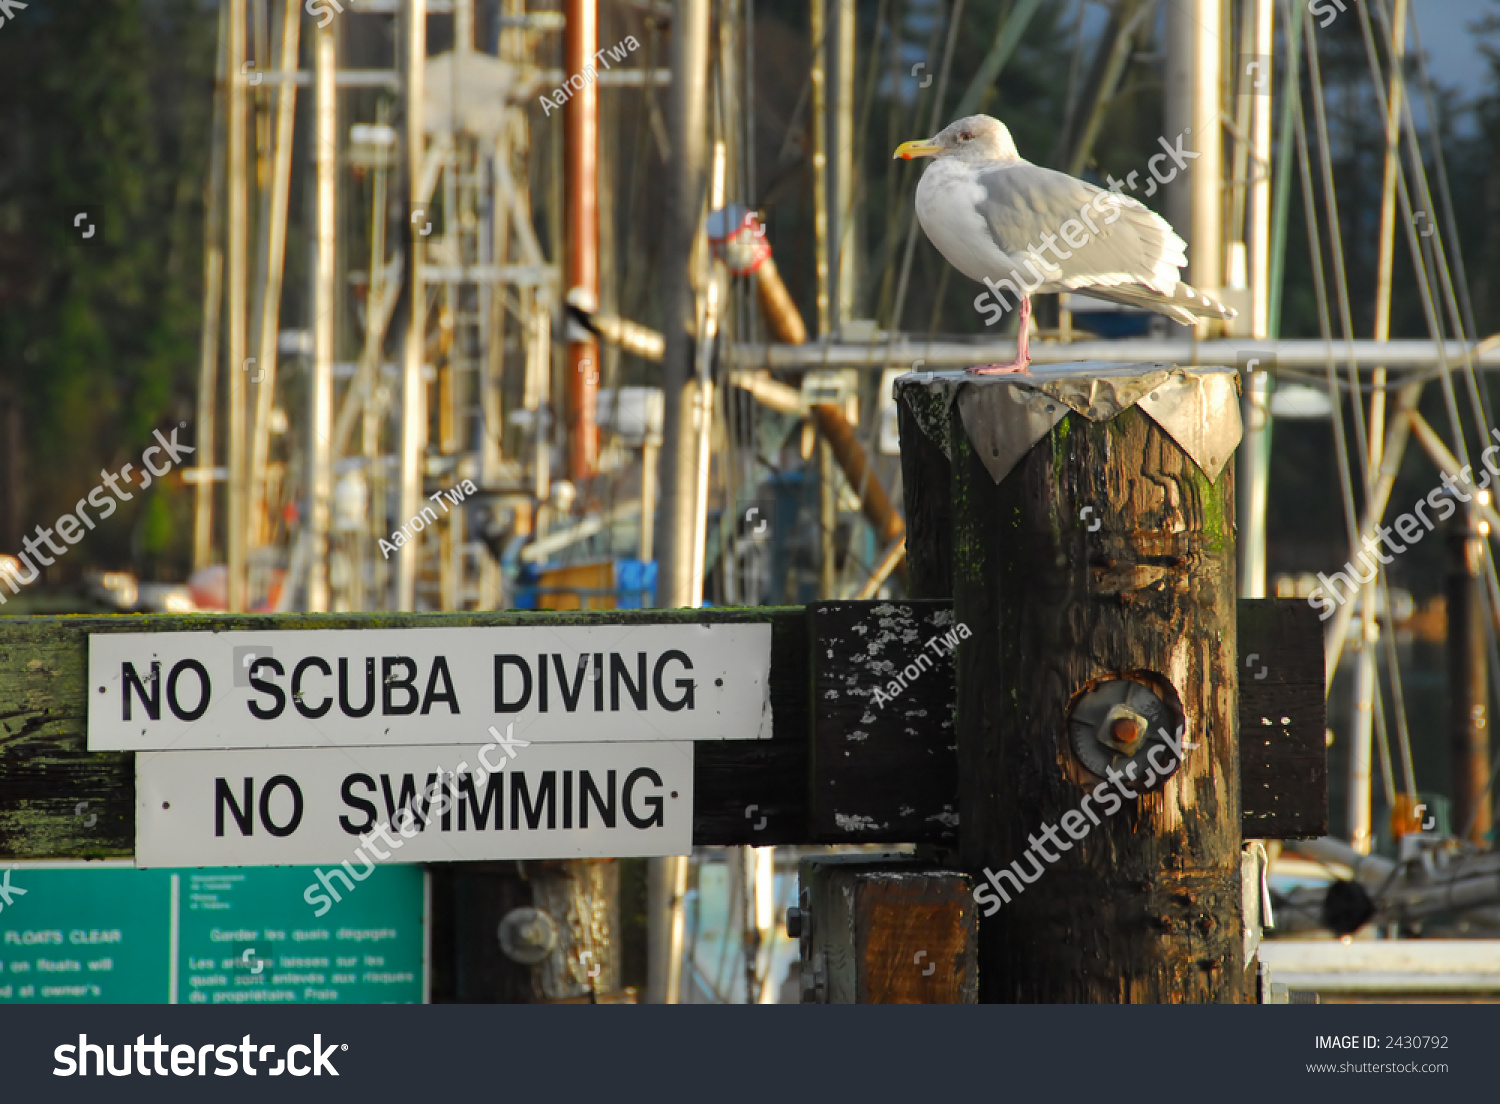 no scuba diving swimming allowed sign stock photo 2430792